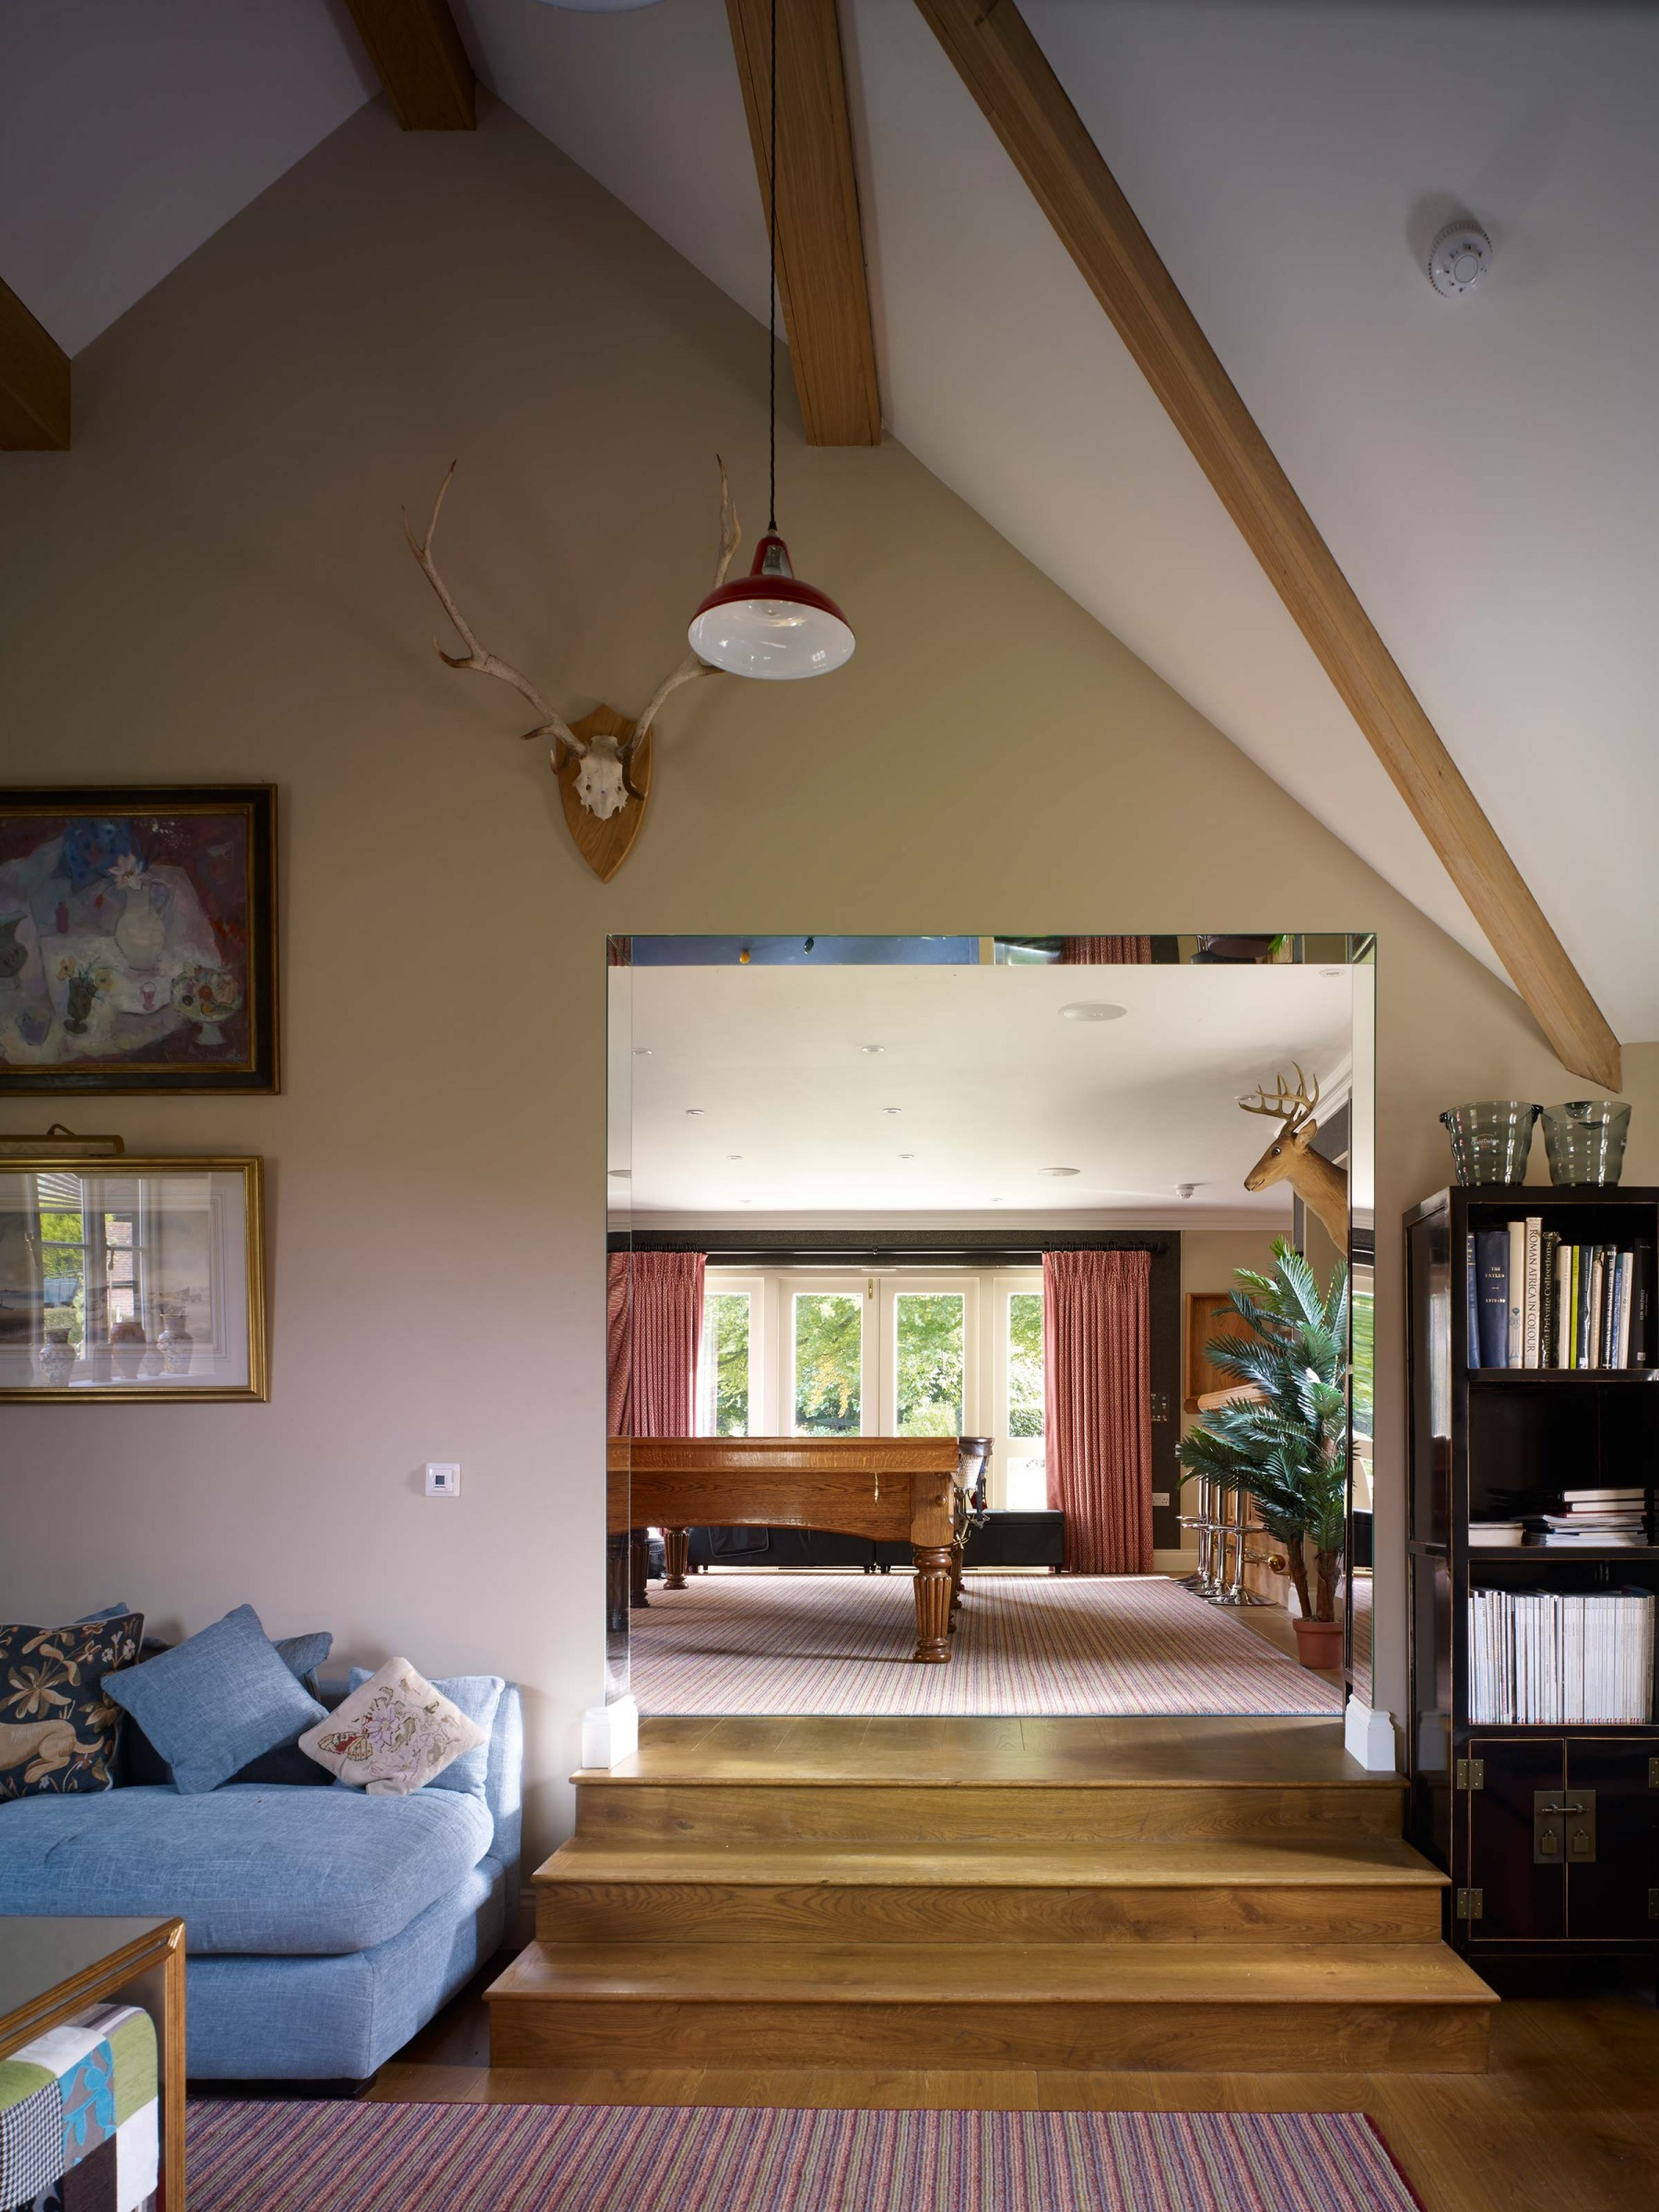 Restoration & extension to Grade II Listed house and barn conversion, Wiltshire